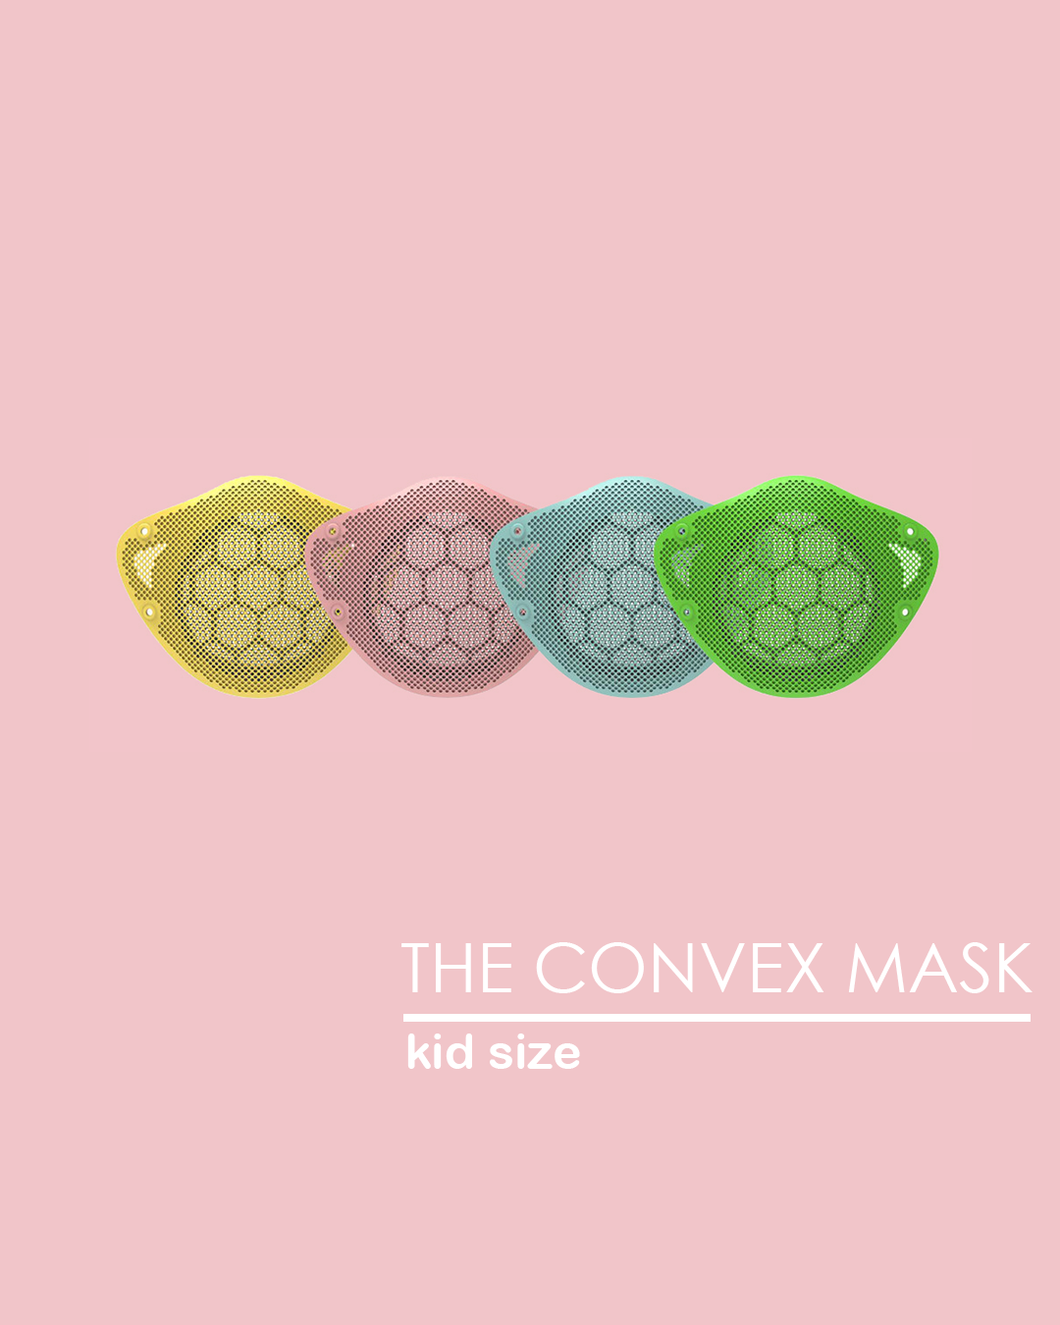 THE CONVEX MASK (KID SIZE)